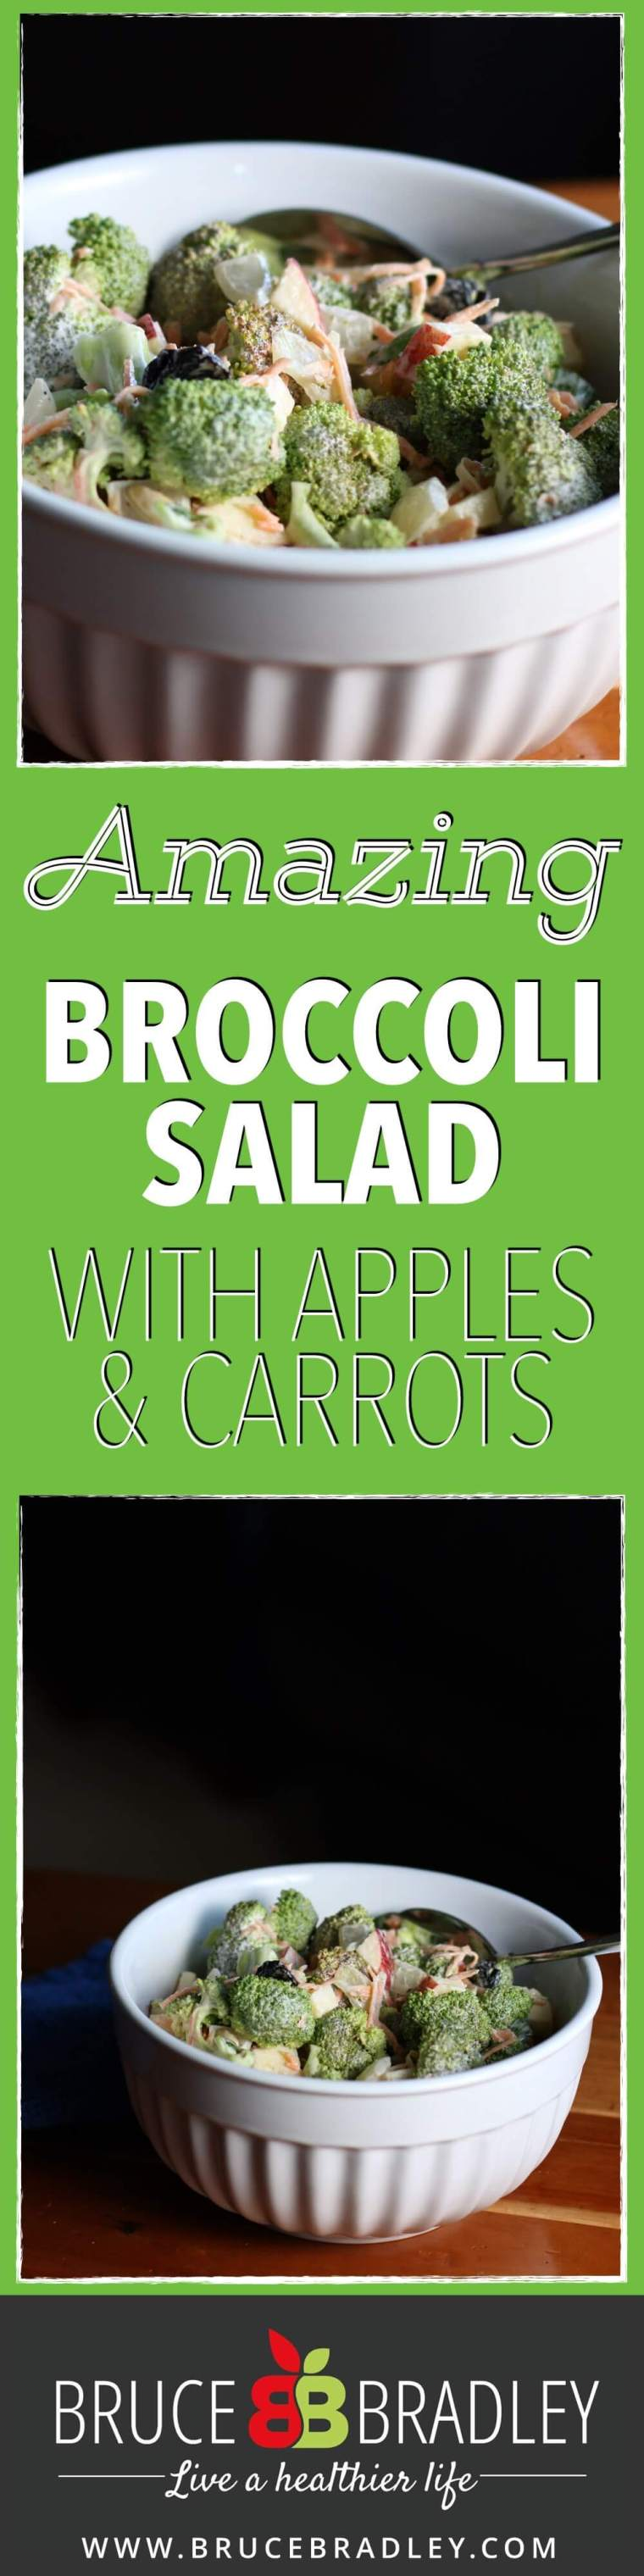 Bruce Bradley's Broccoli Salad is perfect as a main dish or side, and comes together in minutes! It's a great way to get your family eating more veggies and fruit!